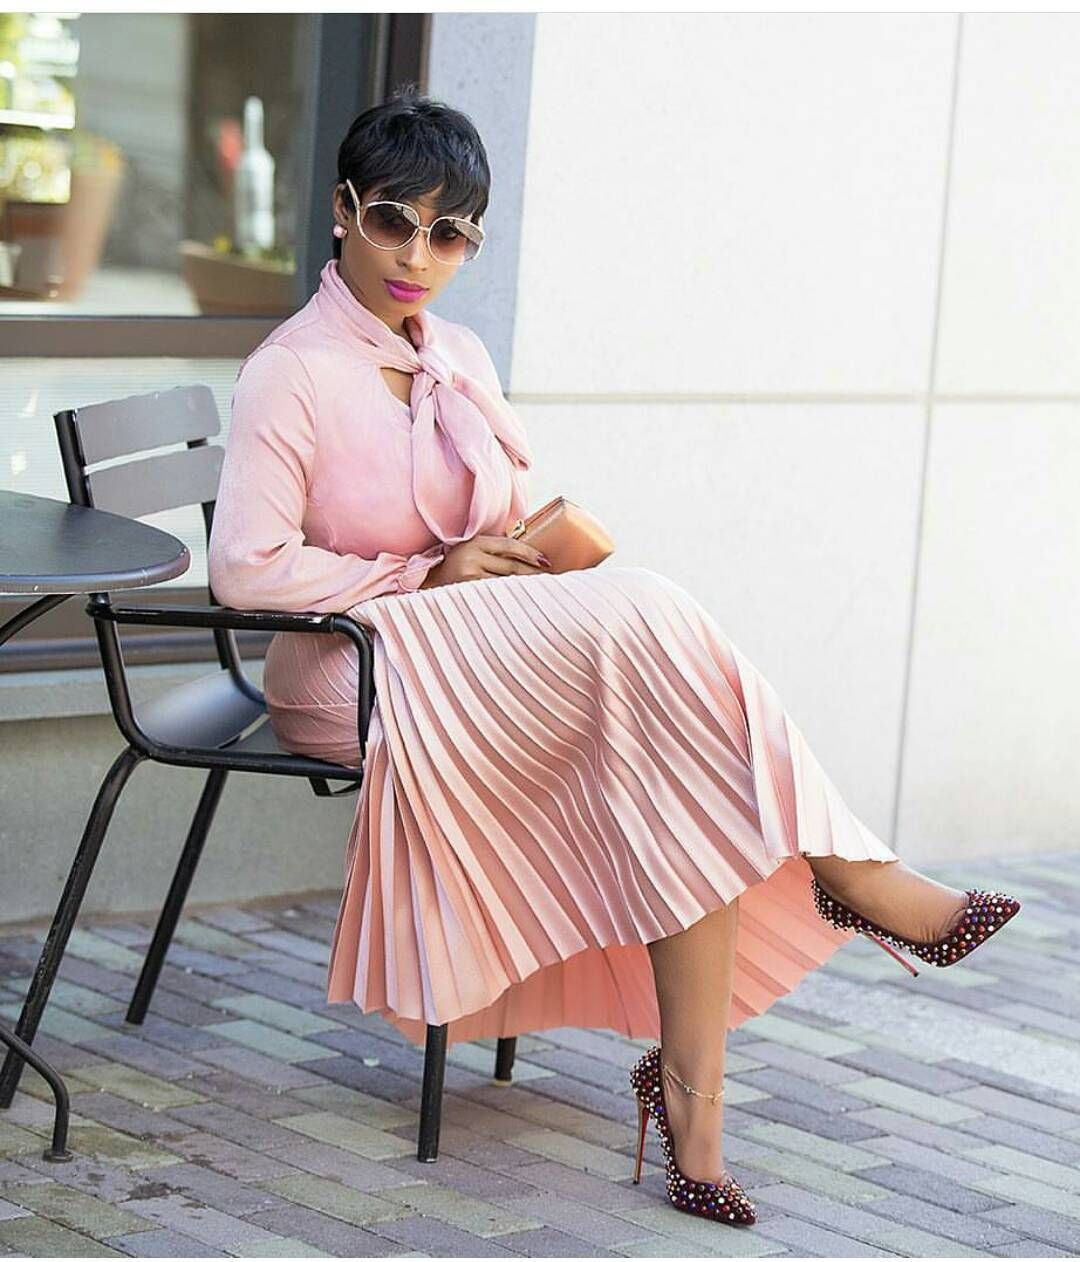 66412e9559855e Chic Ama has to be the hottest fashion blogger because of her sense ...